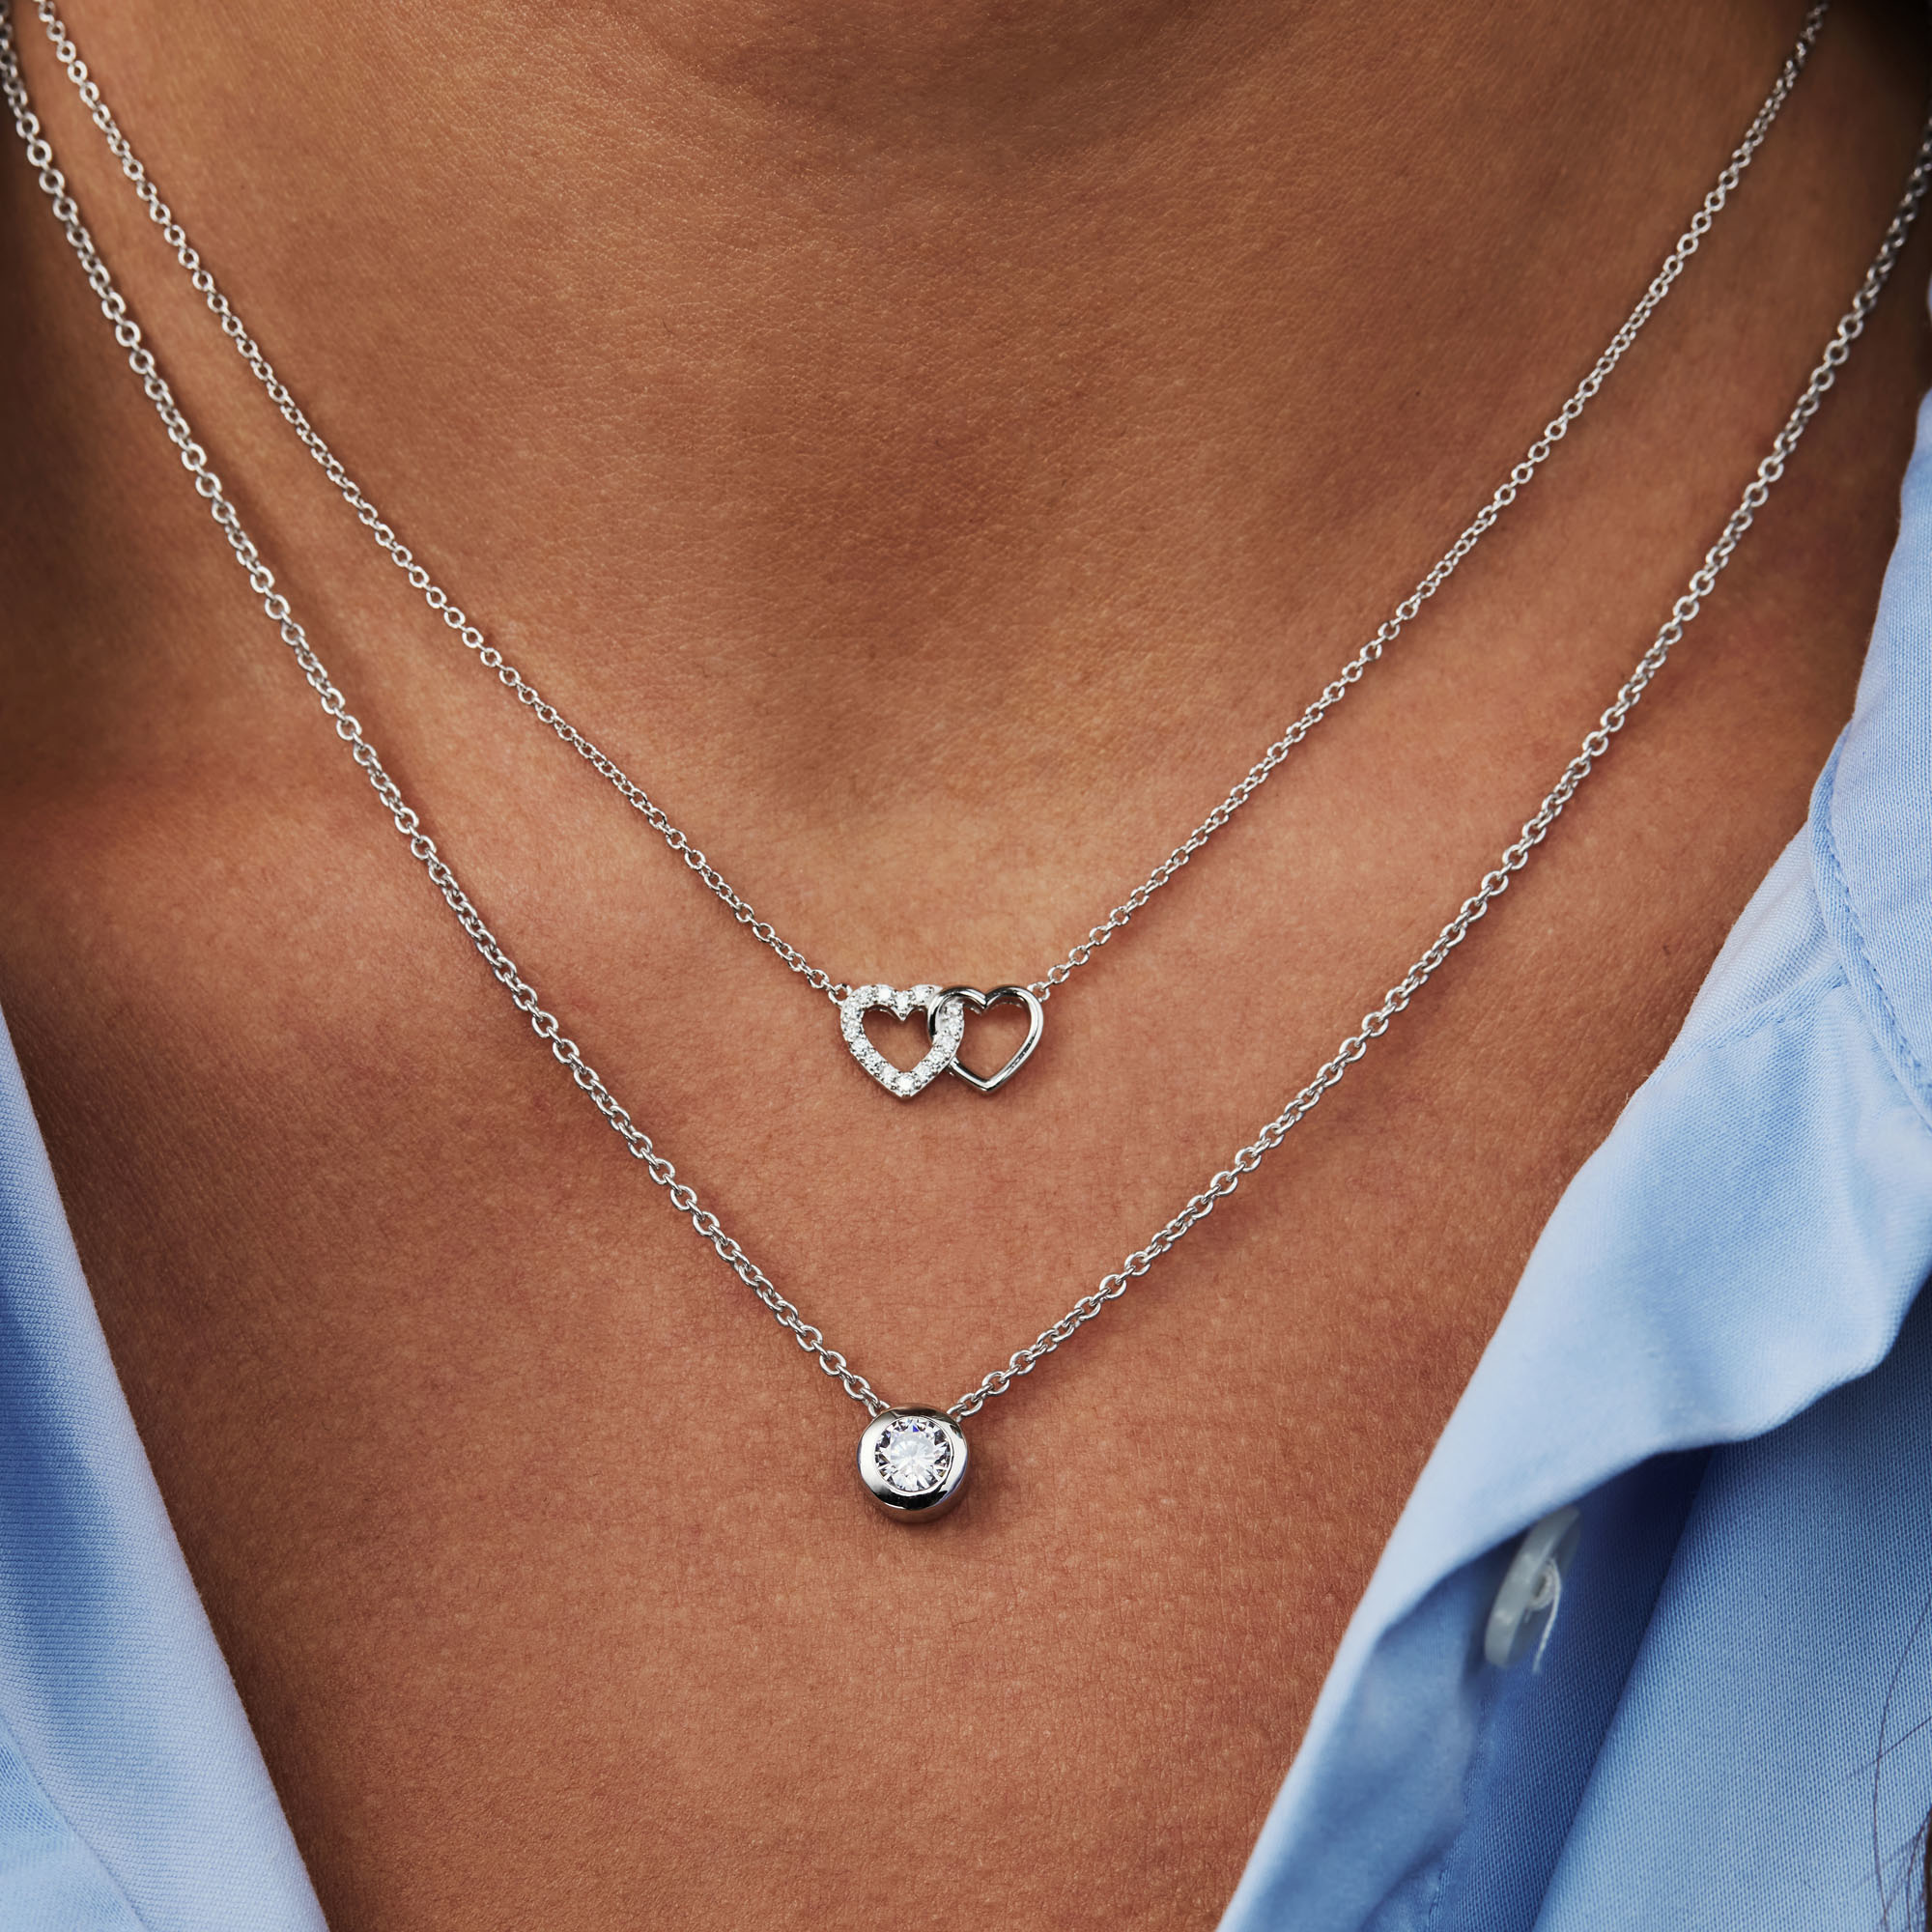 Selected Jewels Aimée 925 sterling silver necklace with 2 hearts and zirconia